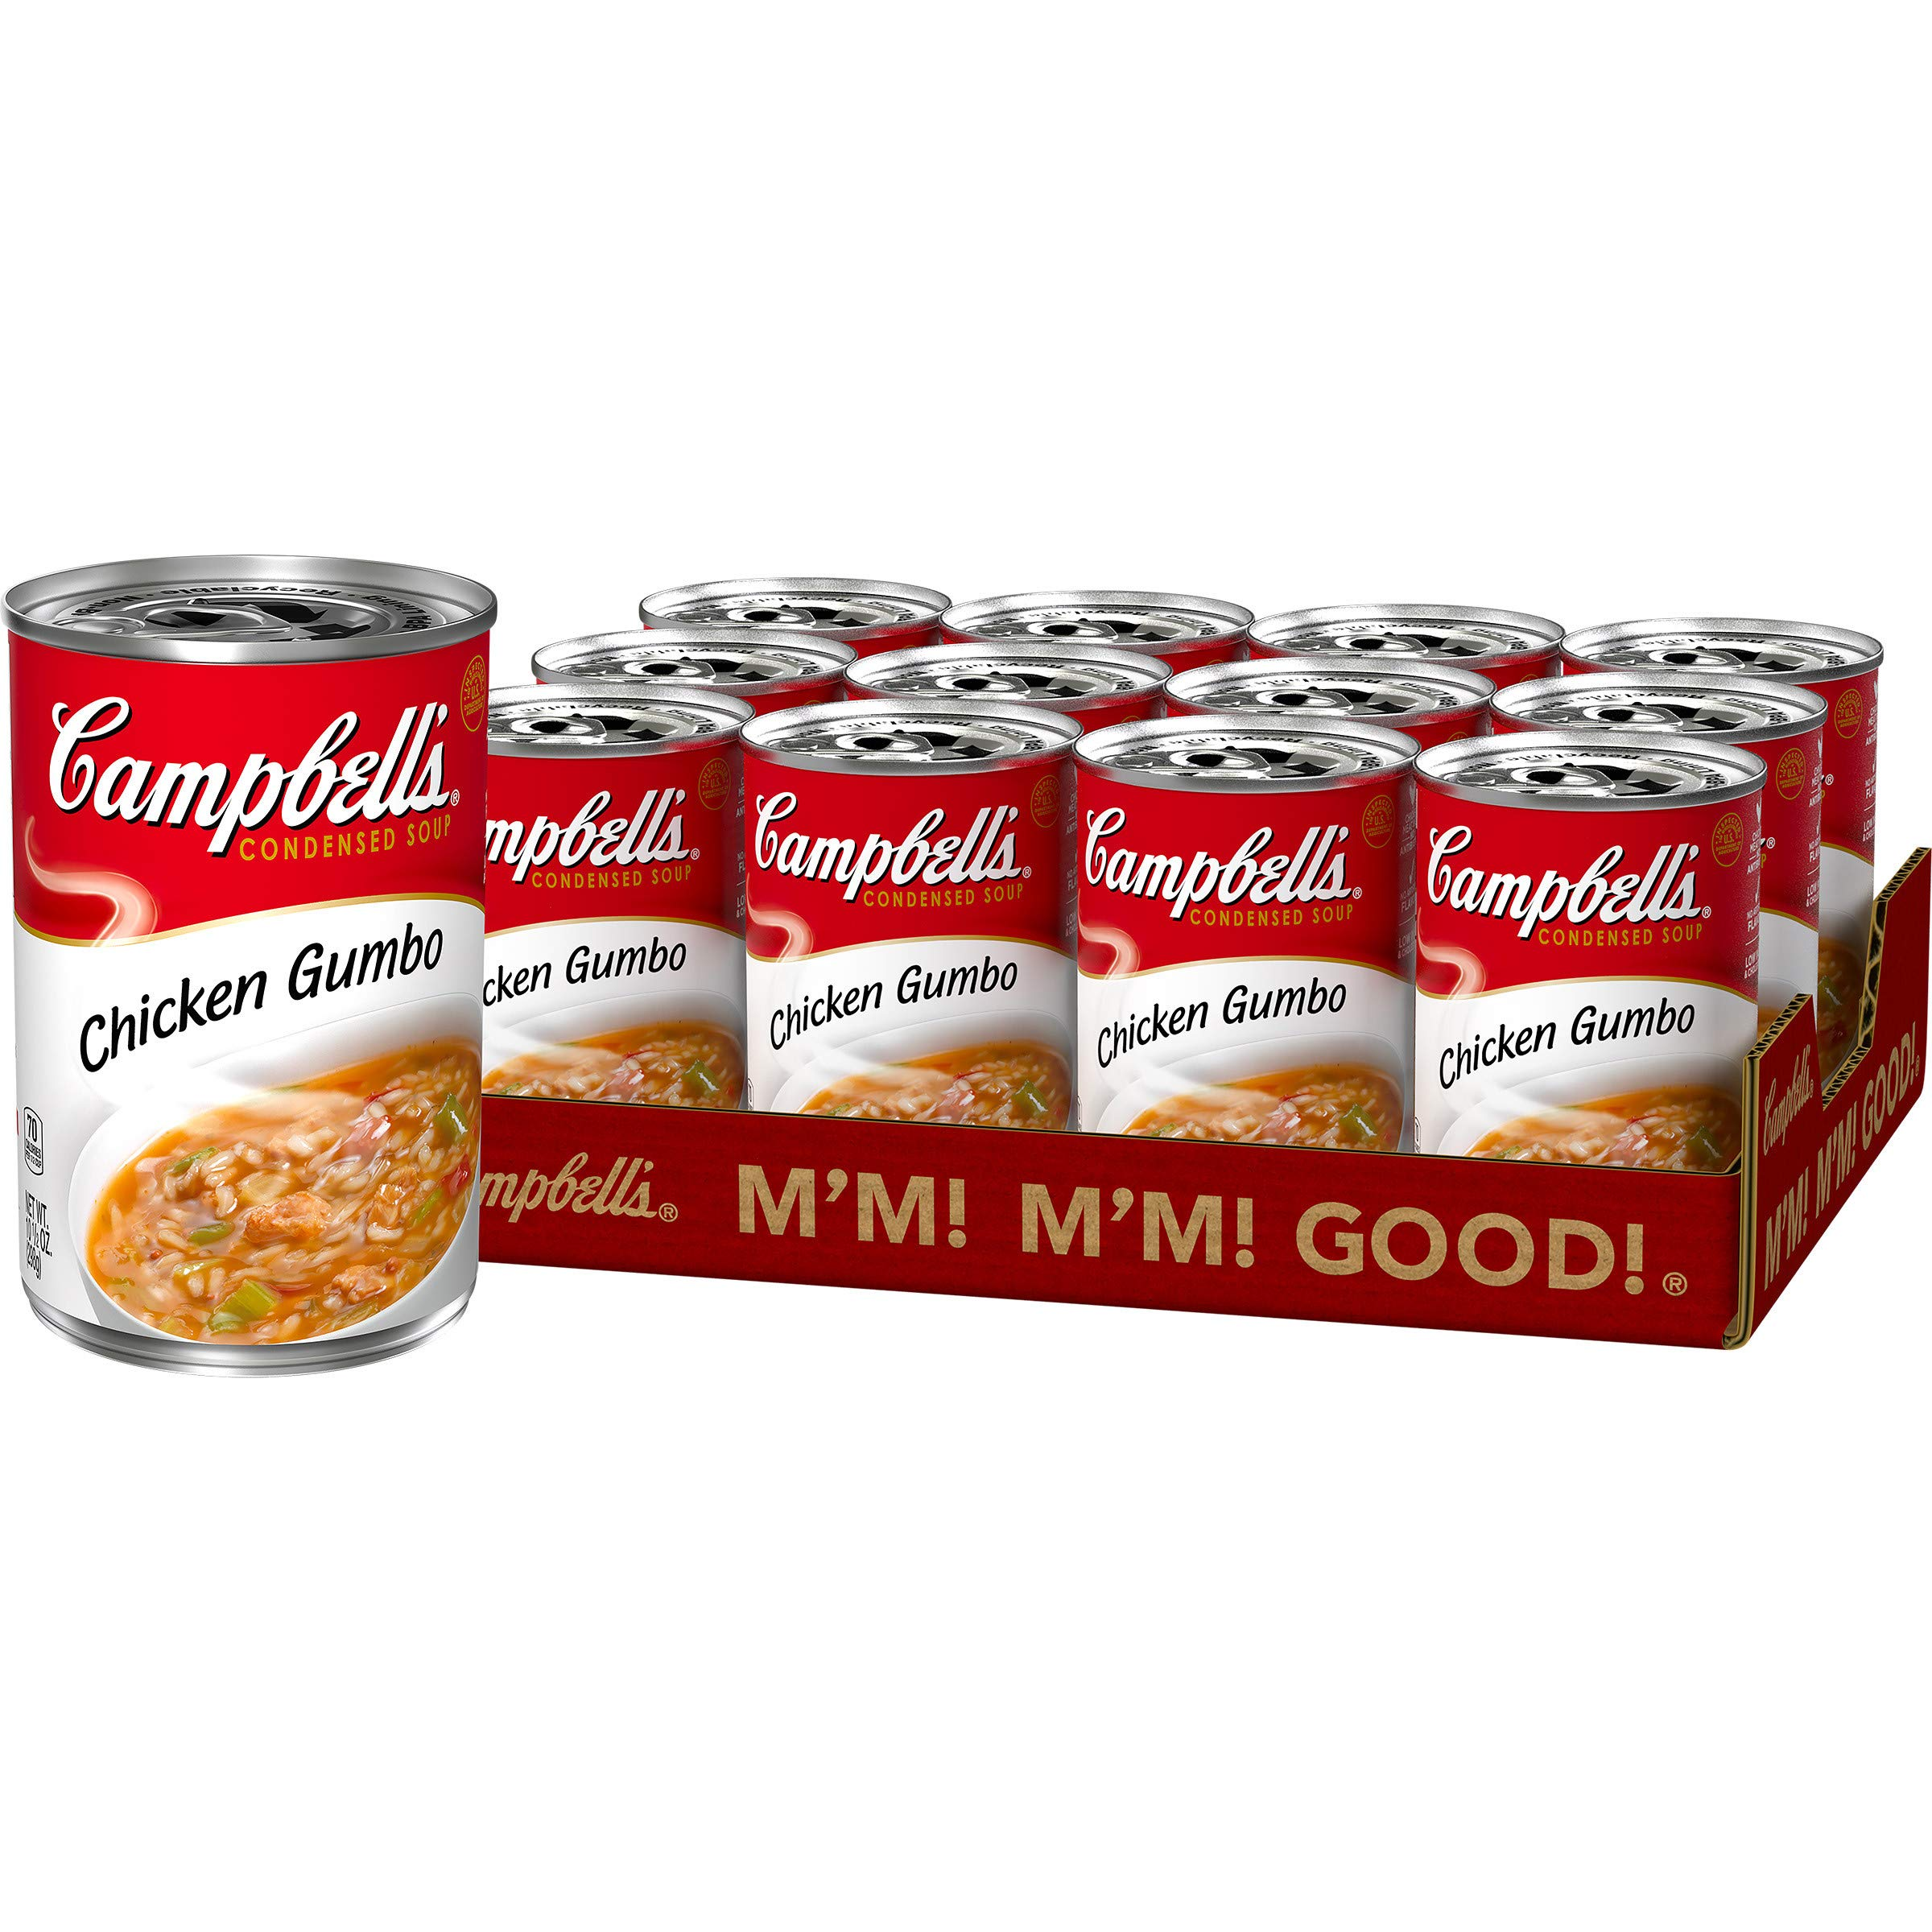 Campbell'sCondensed Chicken Gumbo Soup, 10.5 Ounce (Pack of 12)